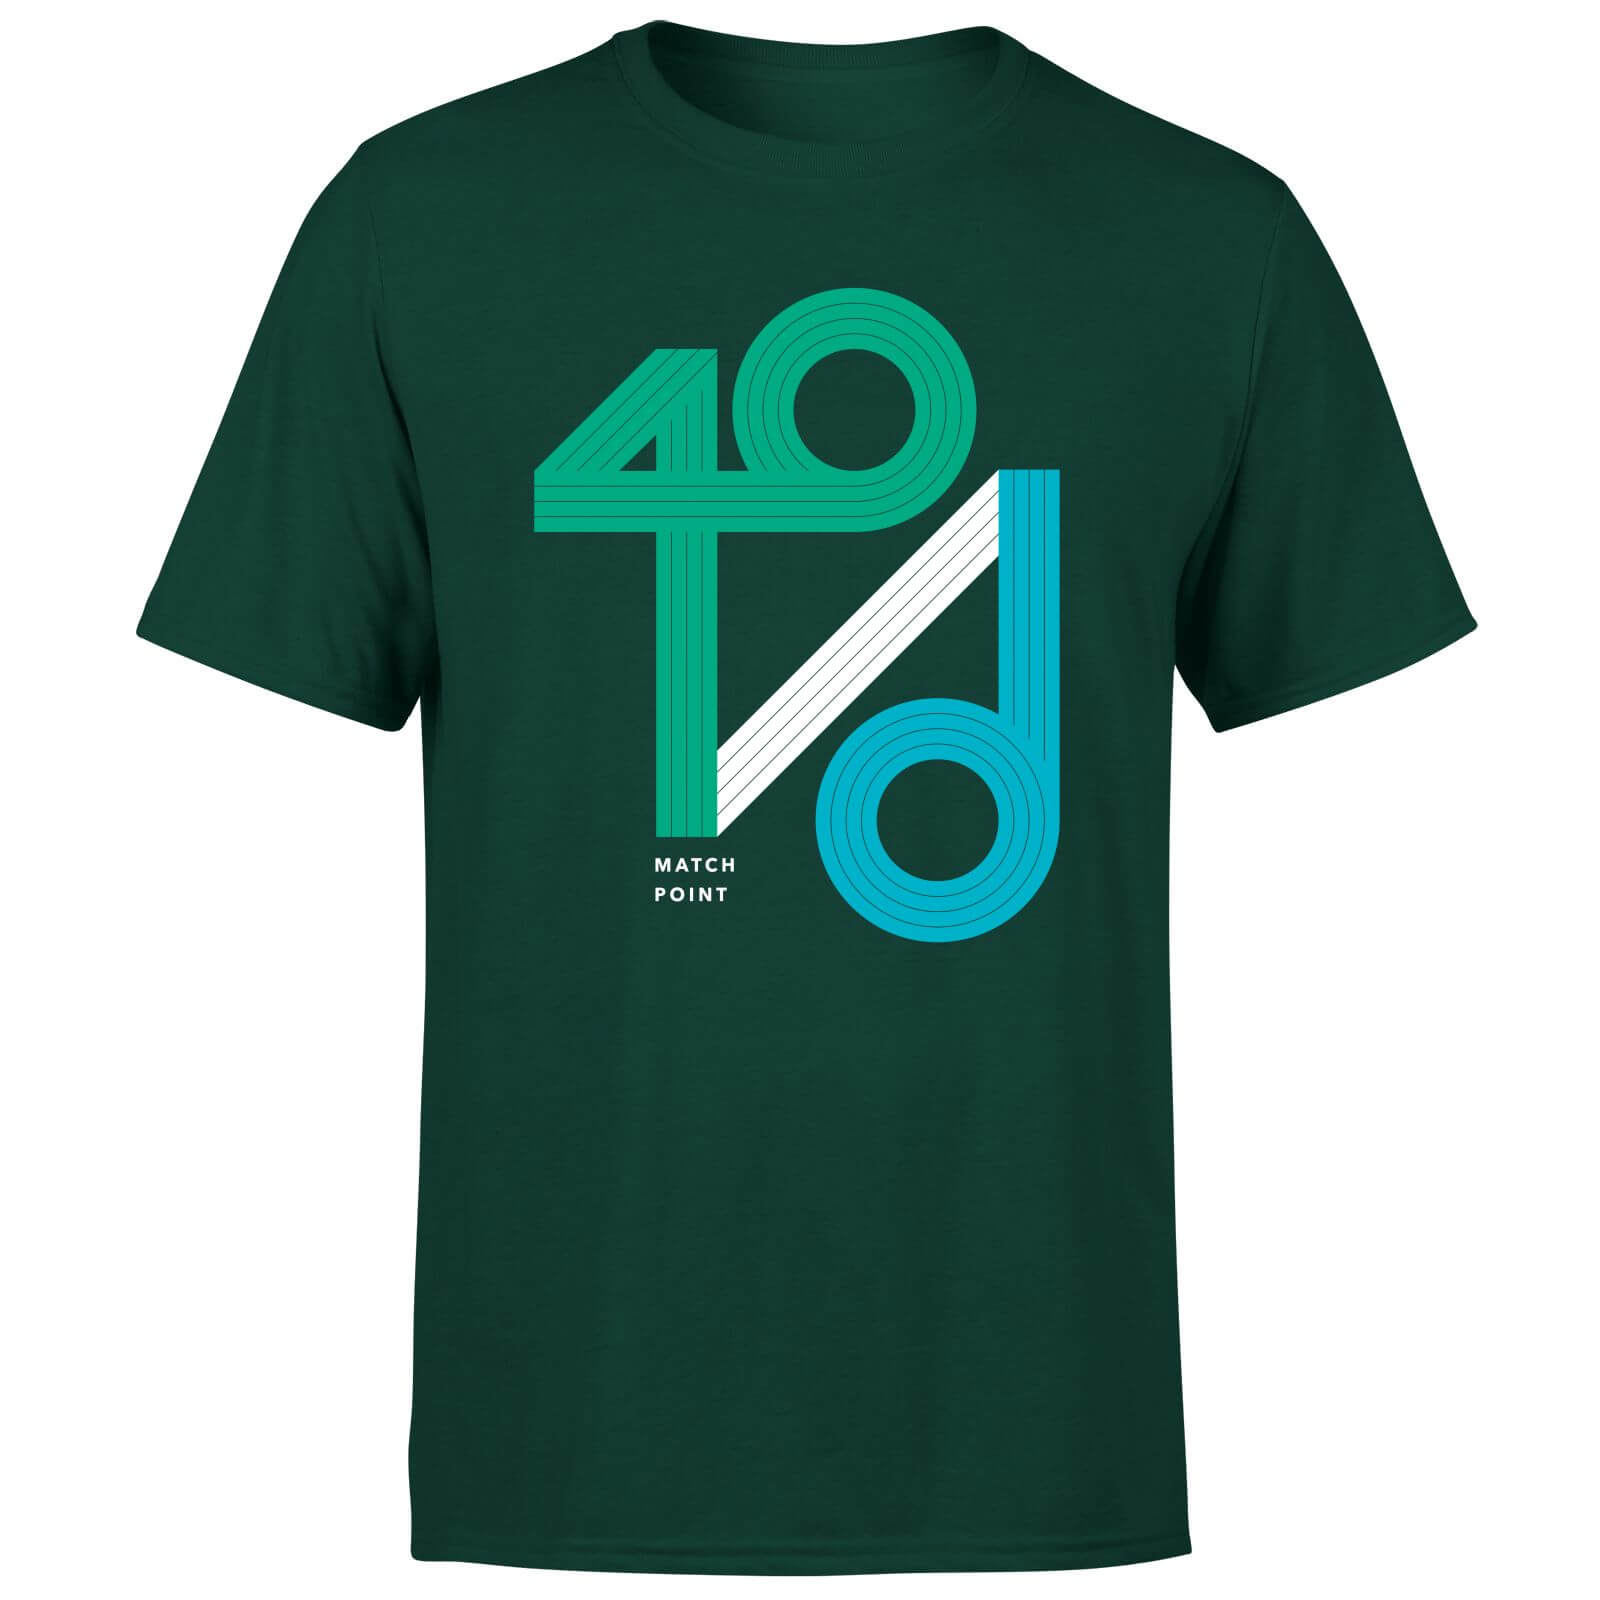 40 / d Match Point T-Shirt - Forest Green